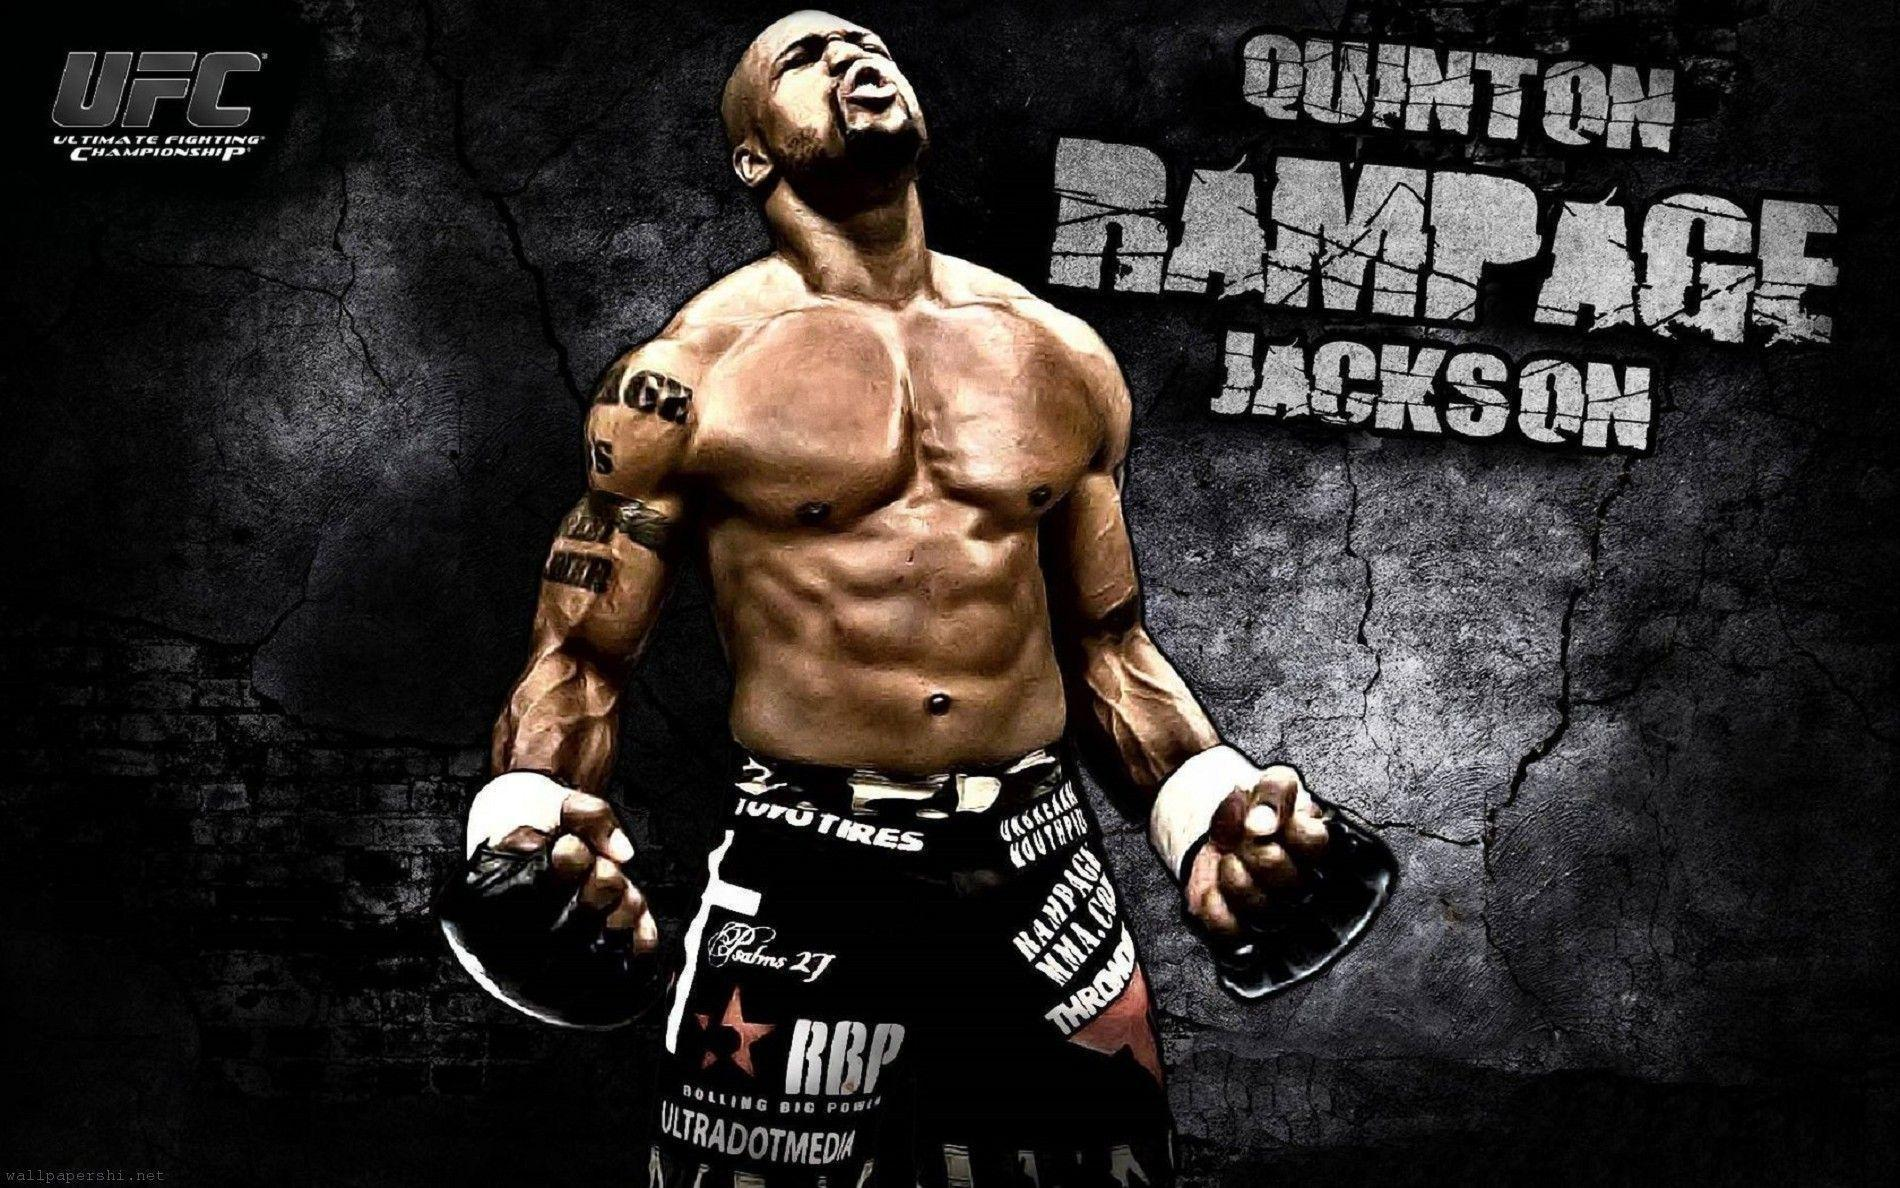 Mma Ufc Quinton Jackson Fighter Mixed Martial Arts